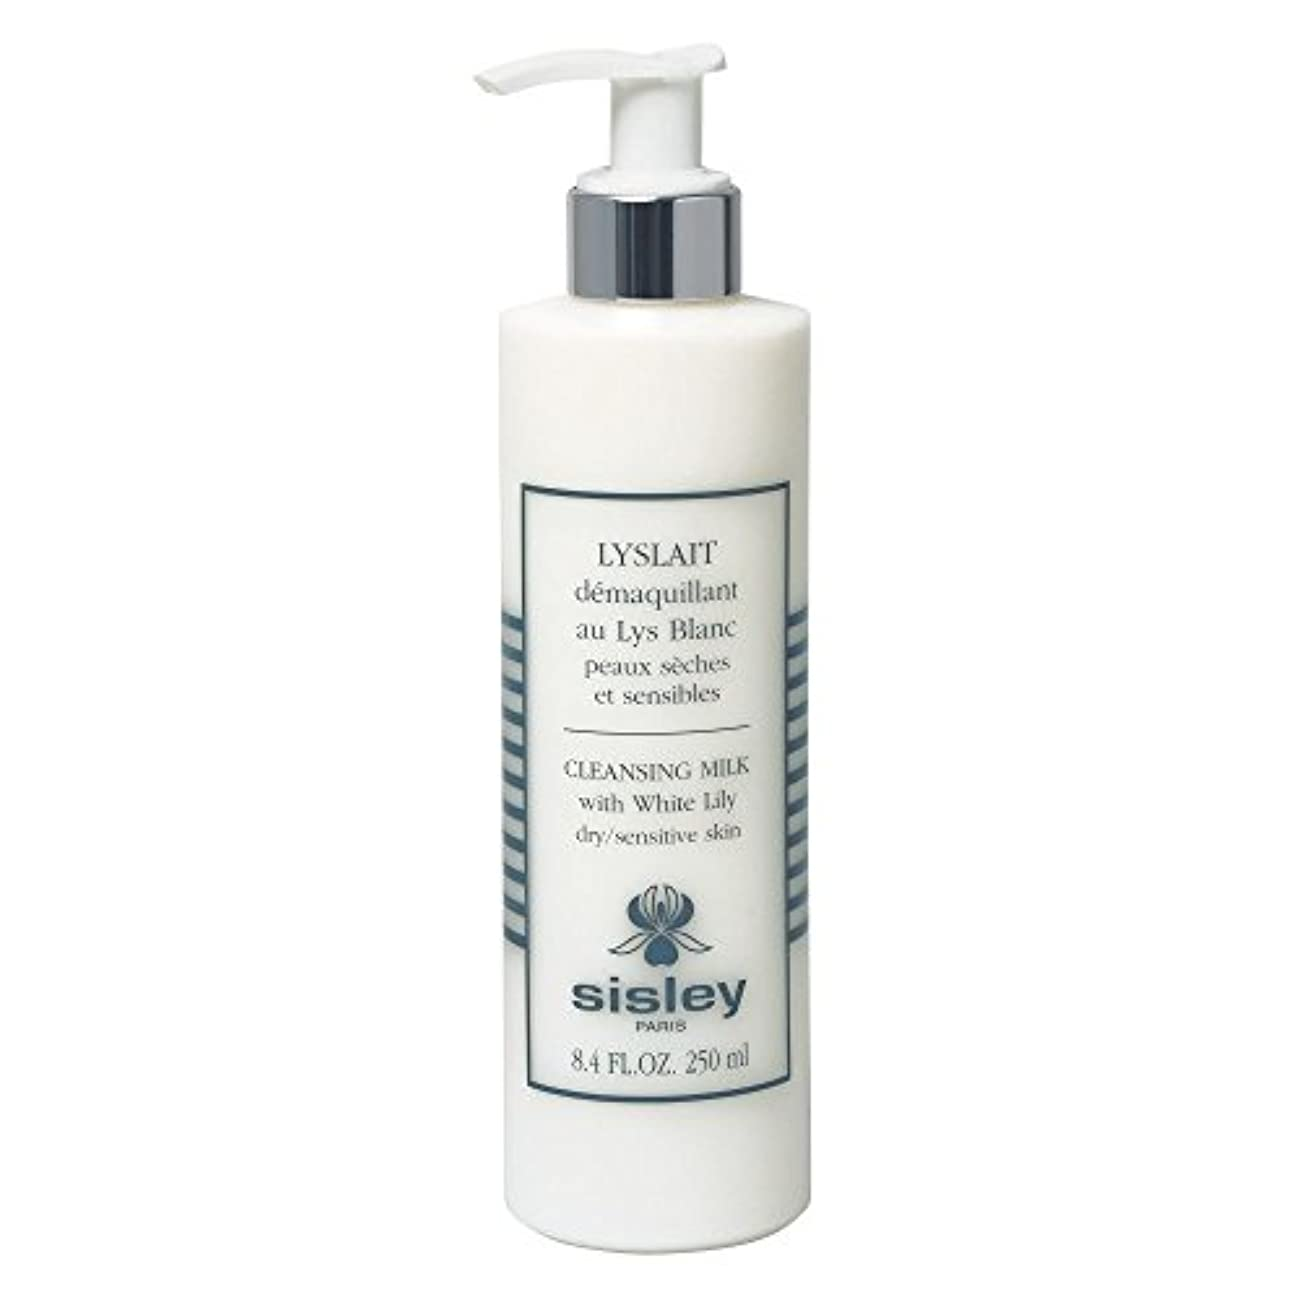 [Sisley] シスレーは、メイクアップLyslait白ユリ、250ミリリットルでミルクを取り除きます - Sisley Lyslait Make-Up Removing Milk With White Lily, 250ml...